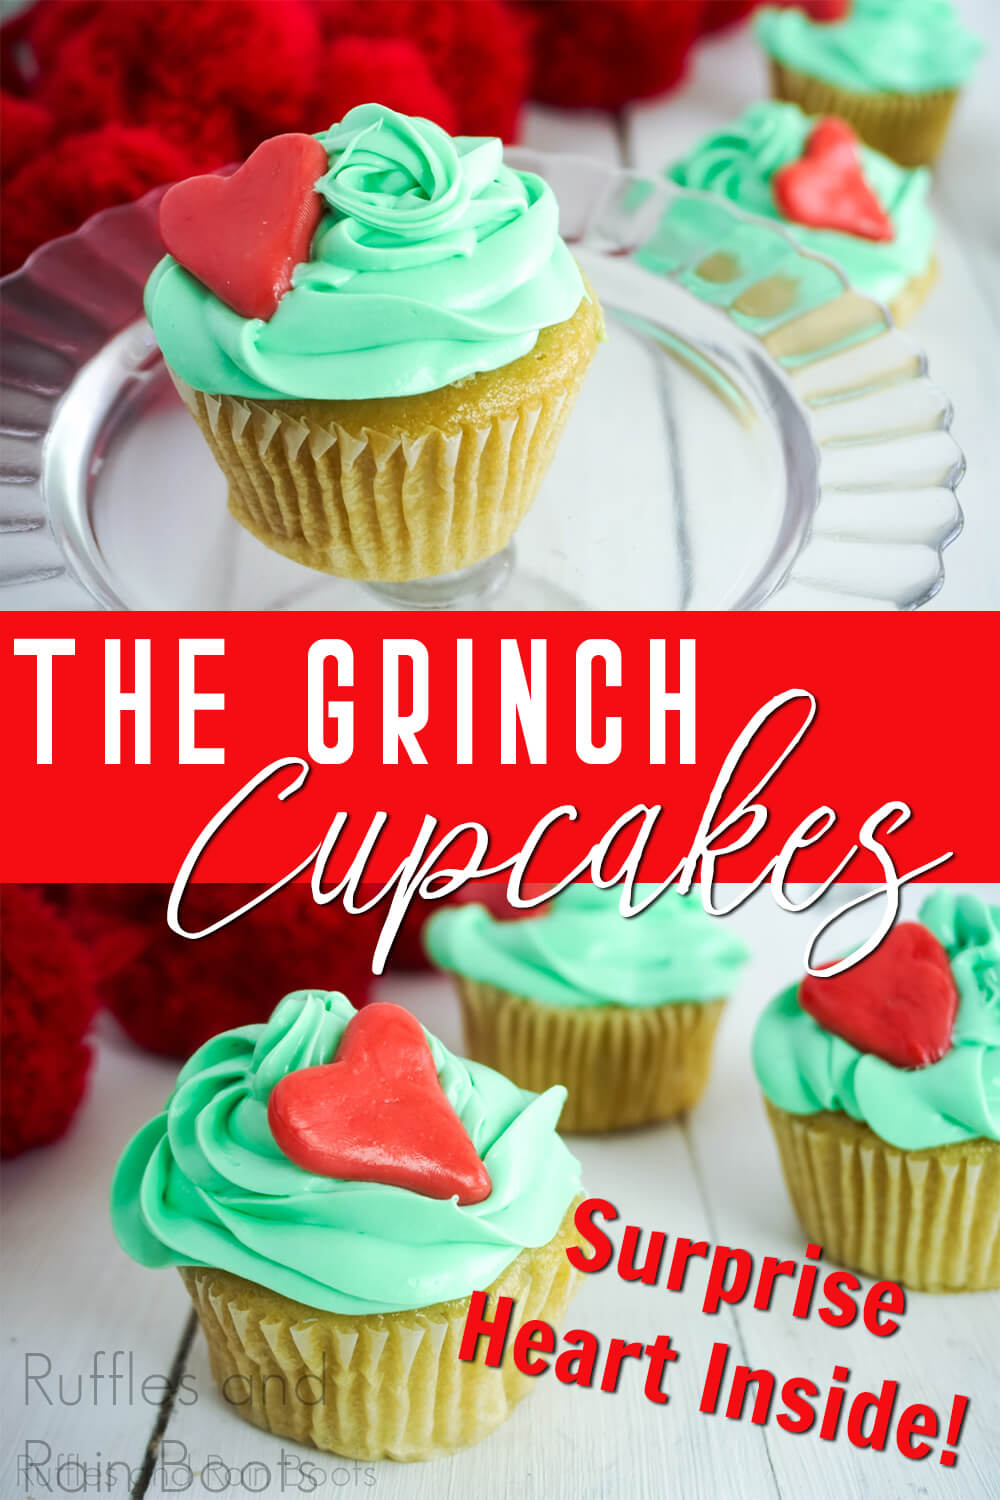 photo collage of grinch cupcakes for a grinch movie night with text which reads The Grinch Cupcakes Surprise Heart Inside